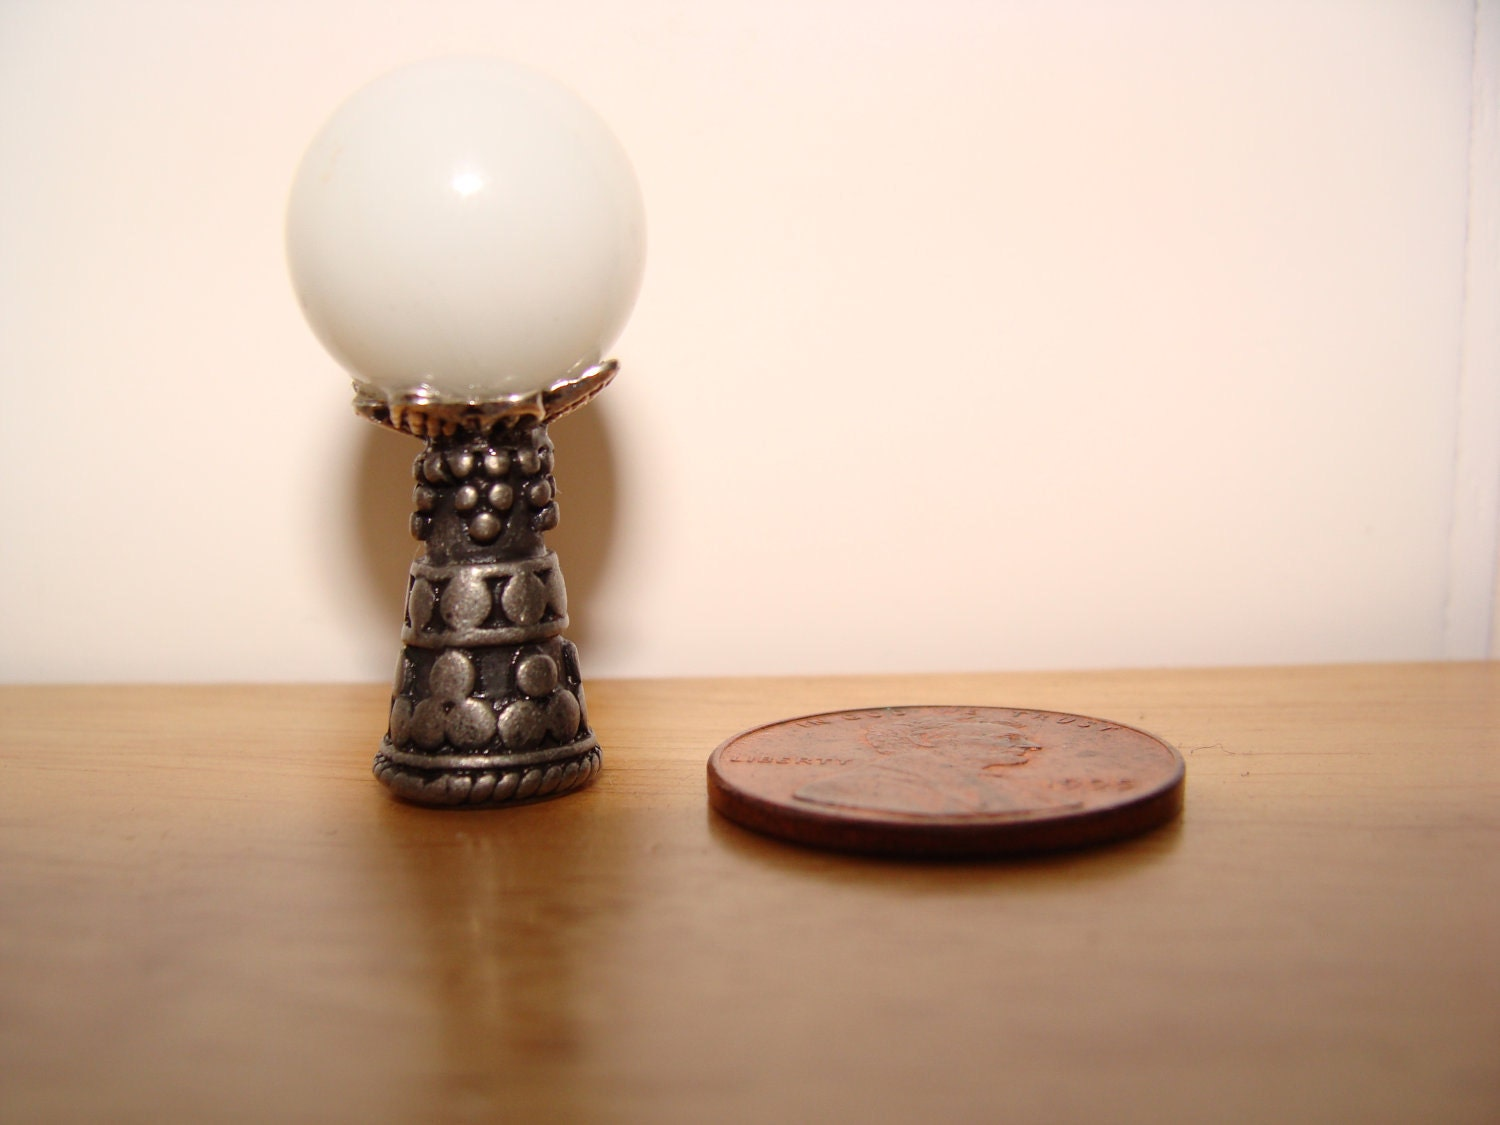 White gazing crystal ball dollhouse miniature 1:12 scale